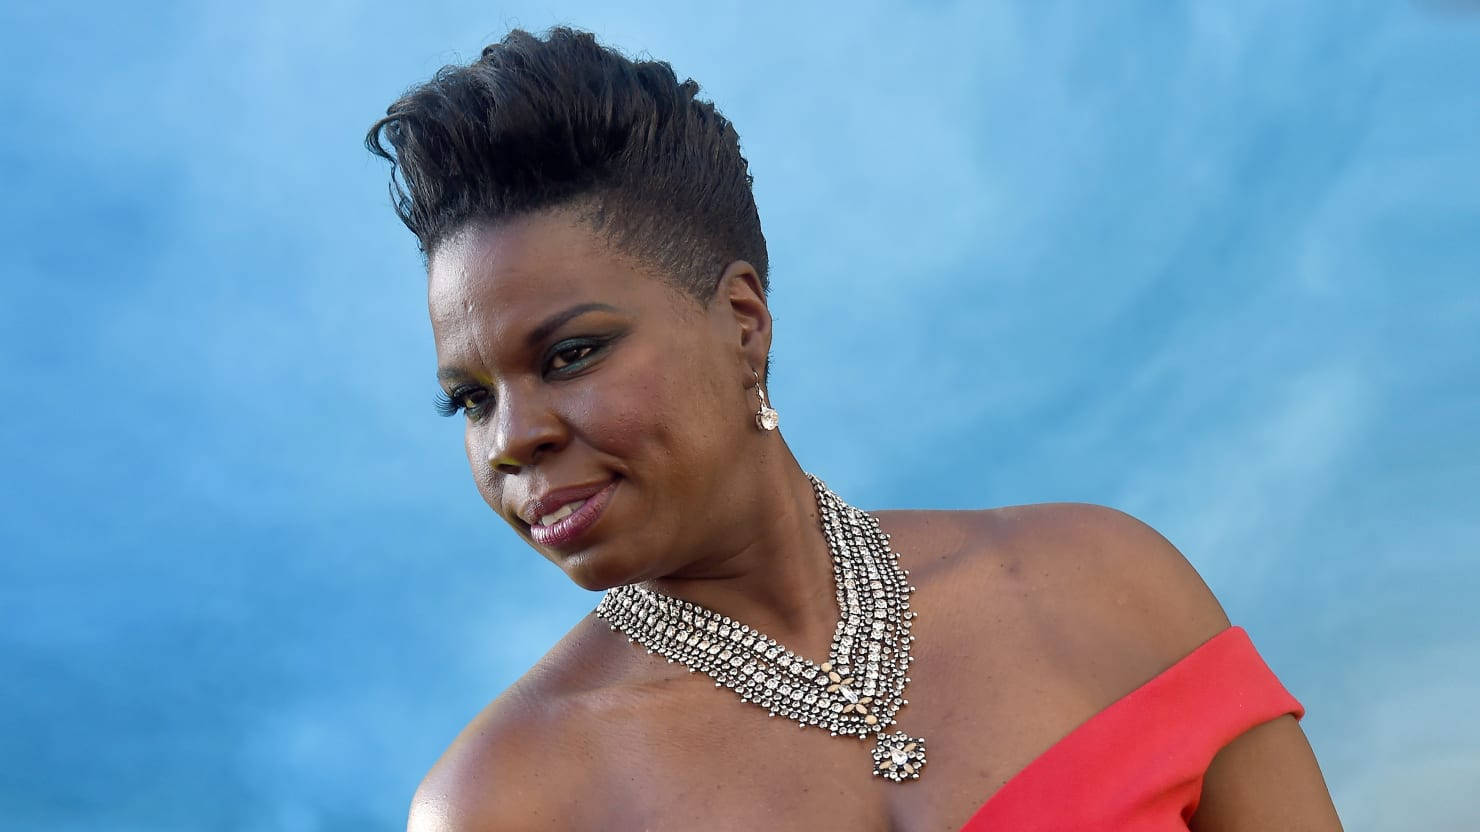 The Hacking of Leslie Jones Exposes Misogynoir at Its Worst